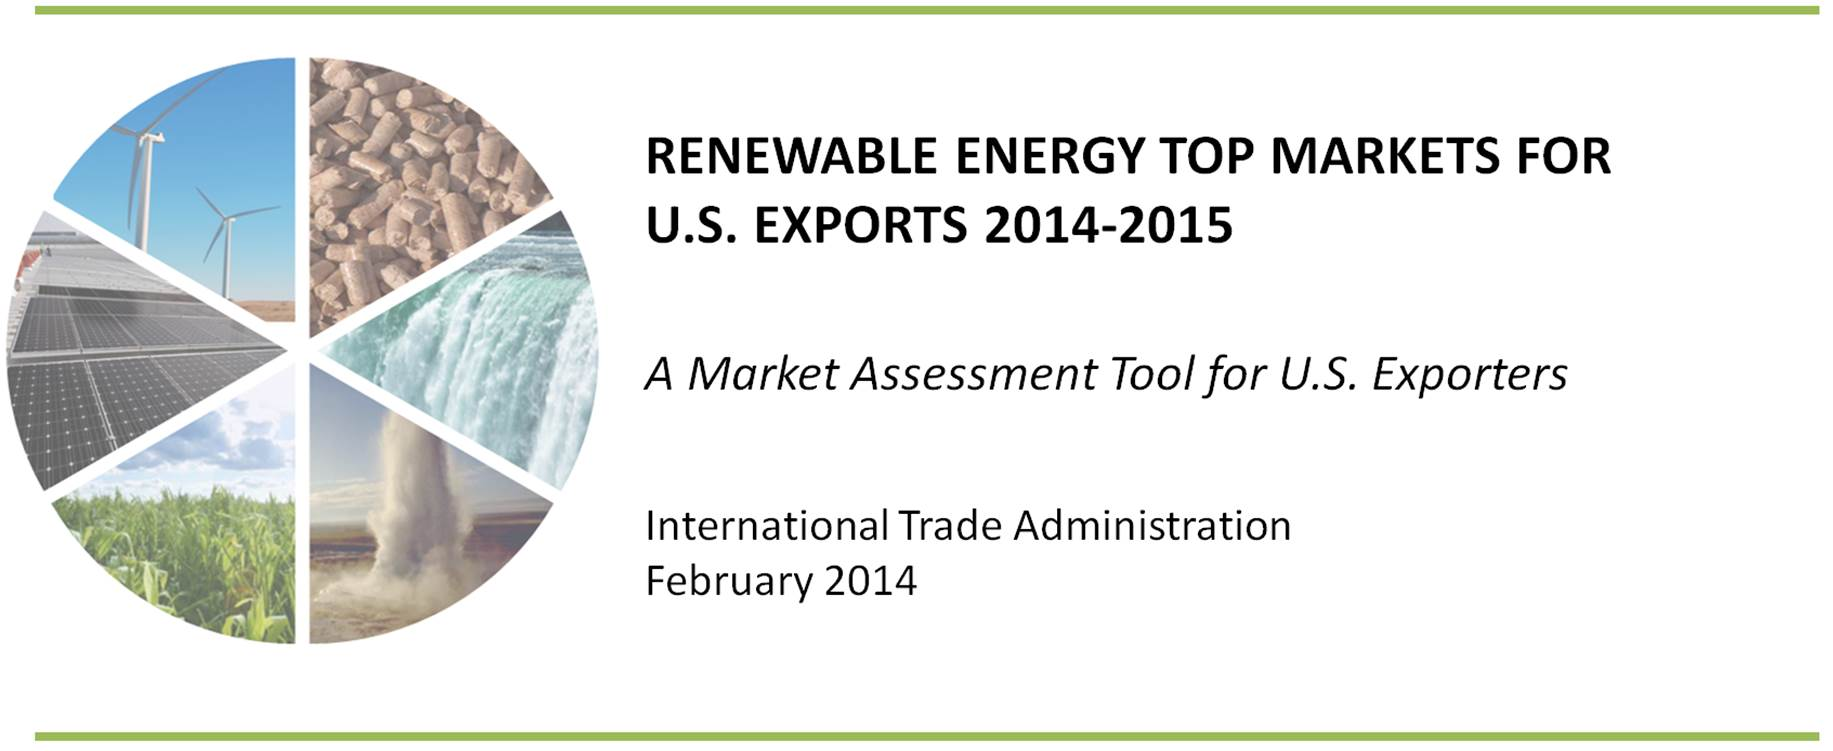 Renewable Energy Top Markets For U.S. Exports 2014-2015